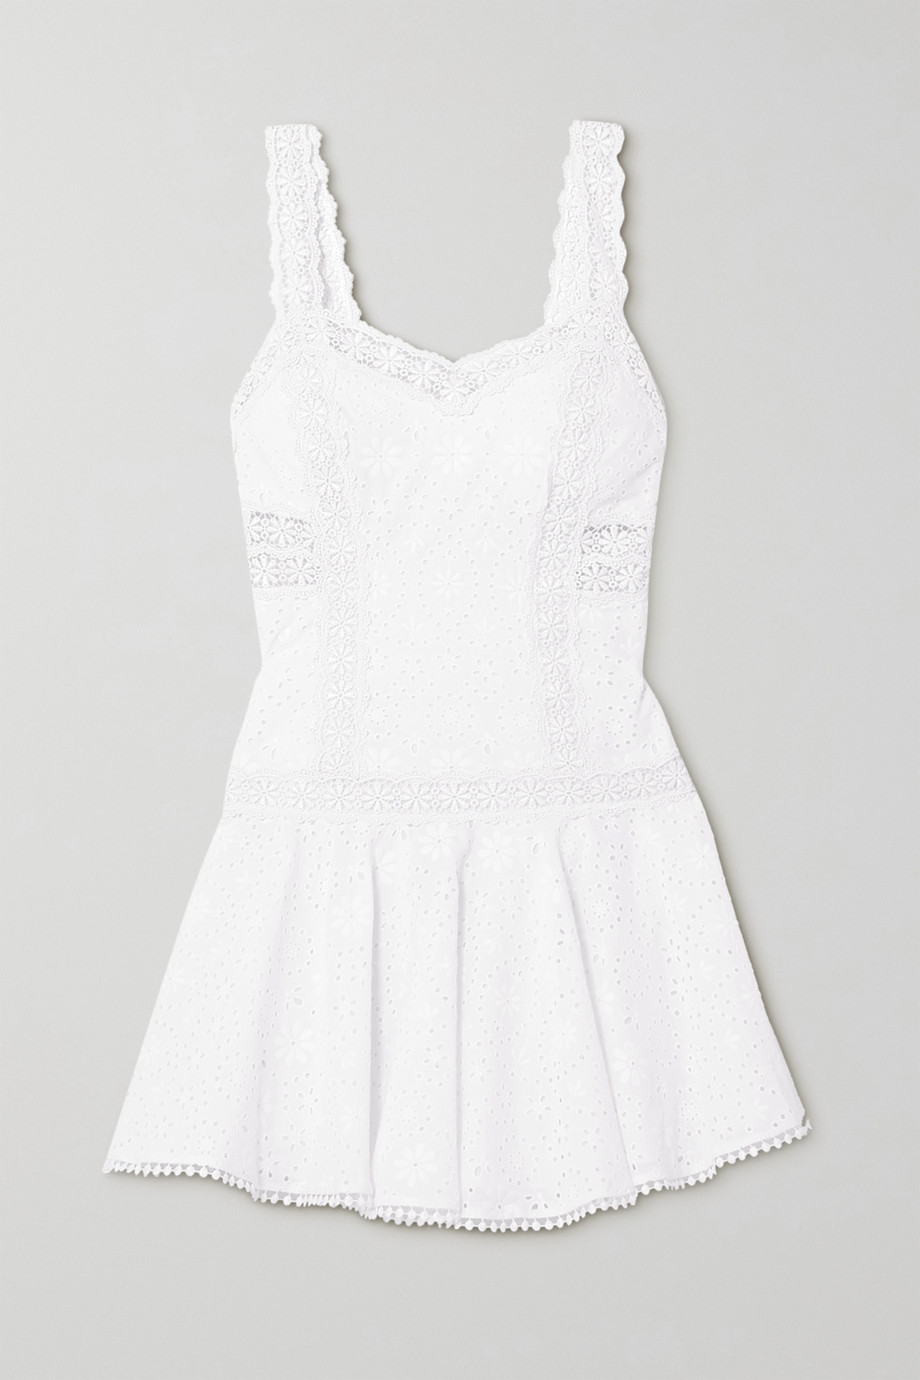 Charo Ruiz Biba crocheted lace-trimmed broderie anglaise cotton-blend mini dress